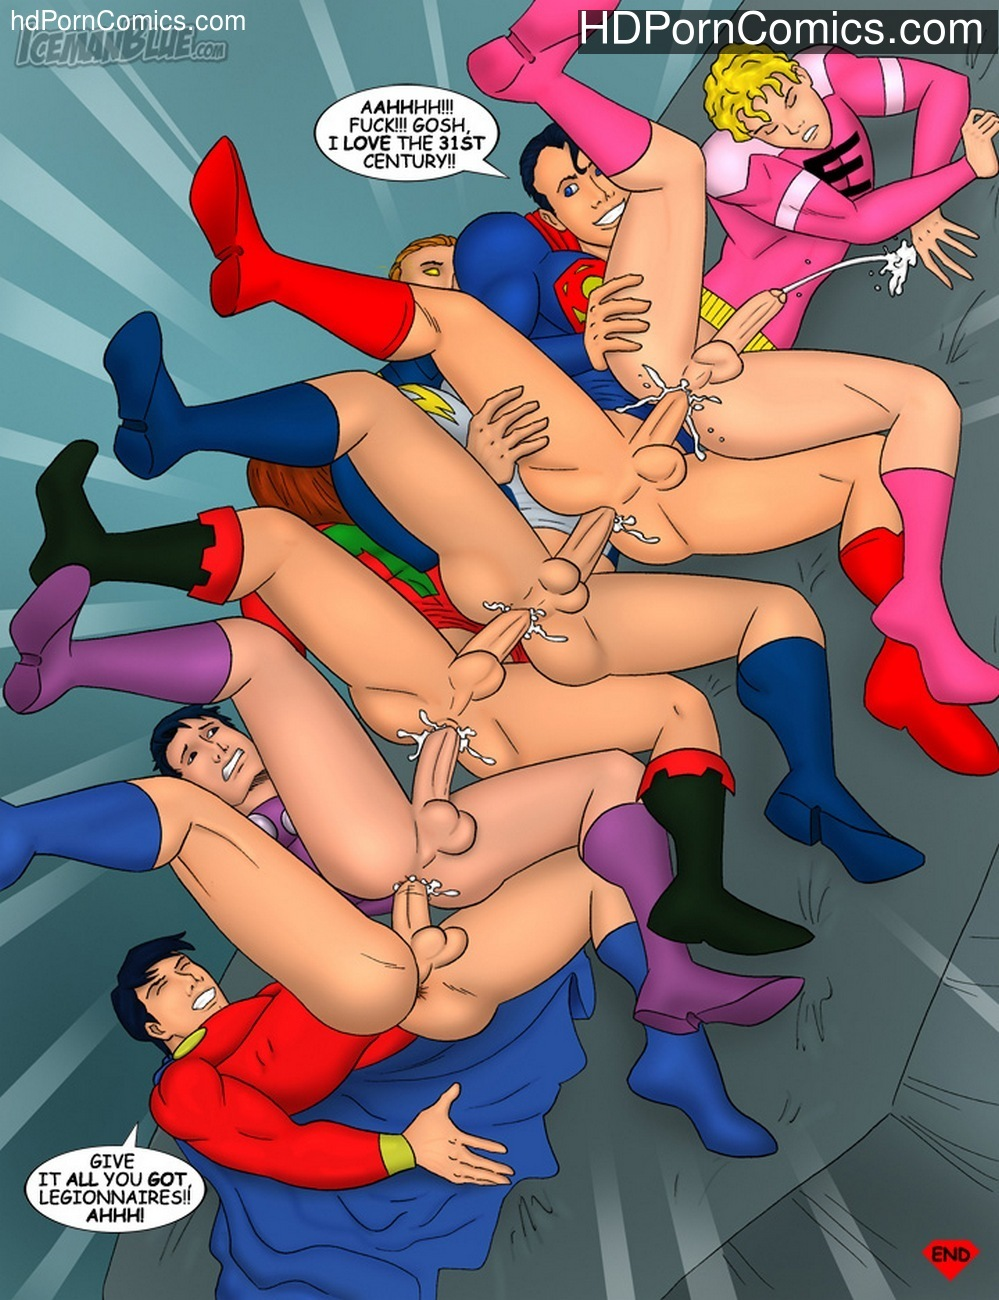 xxx-superhero-yaoi-so-many-nude-women